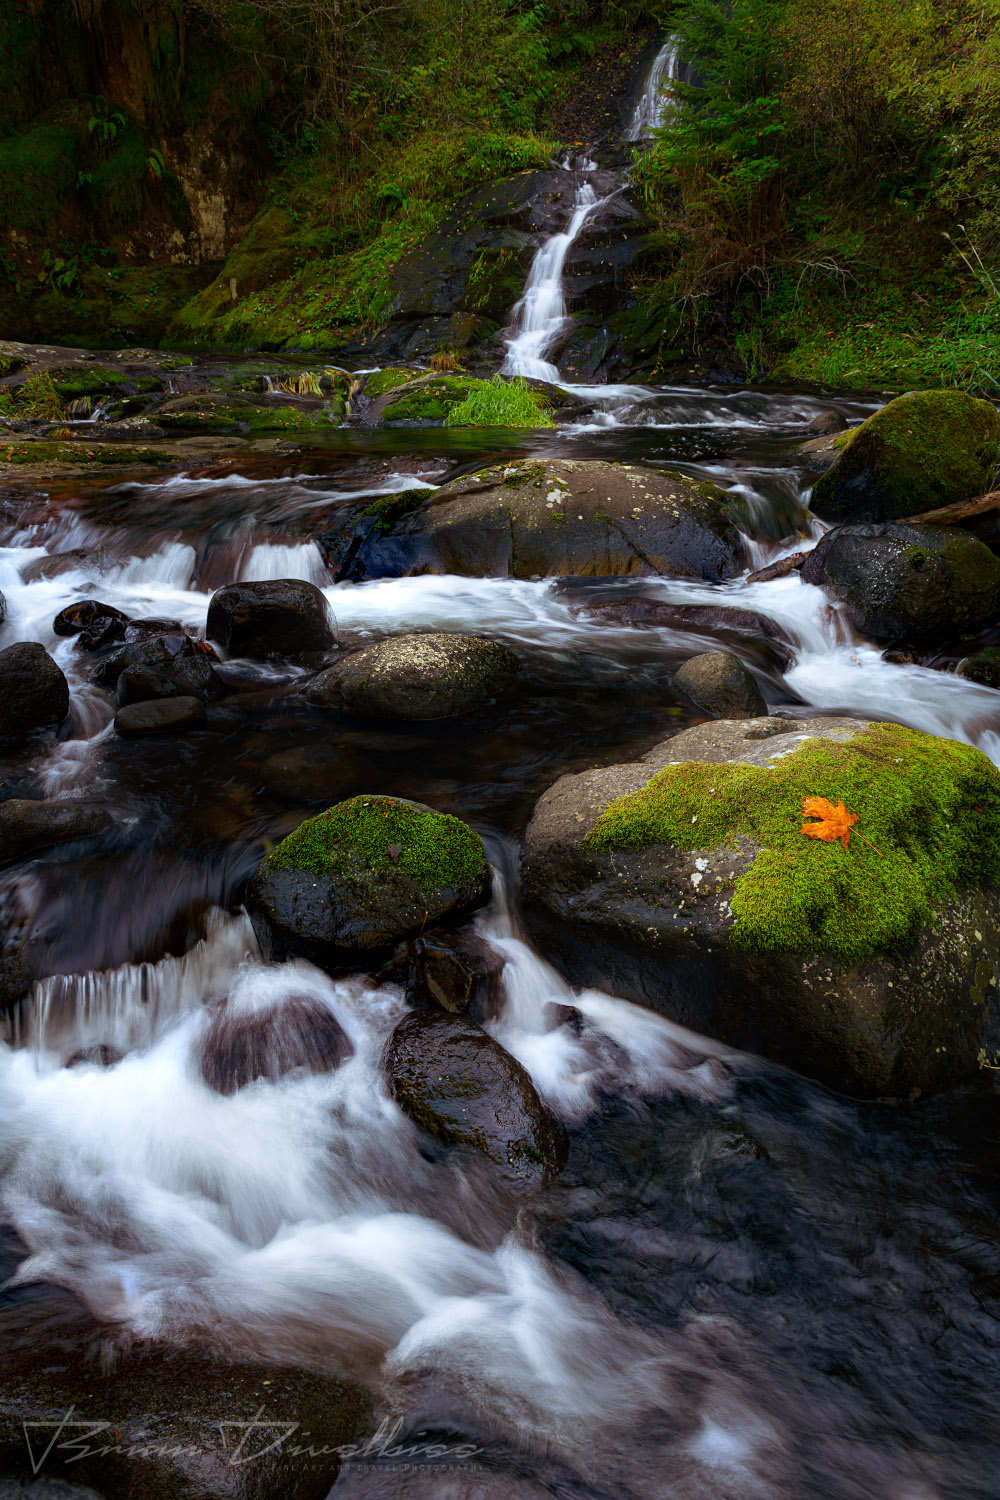 Water from a distant waterfall flows over and between mossy rocks in Oregon.